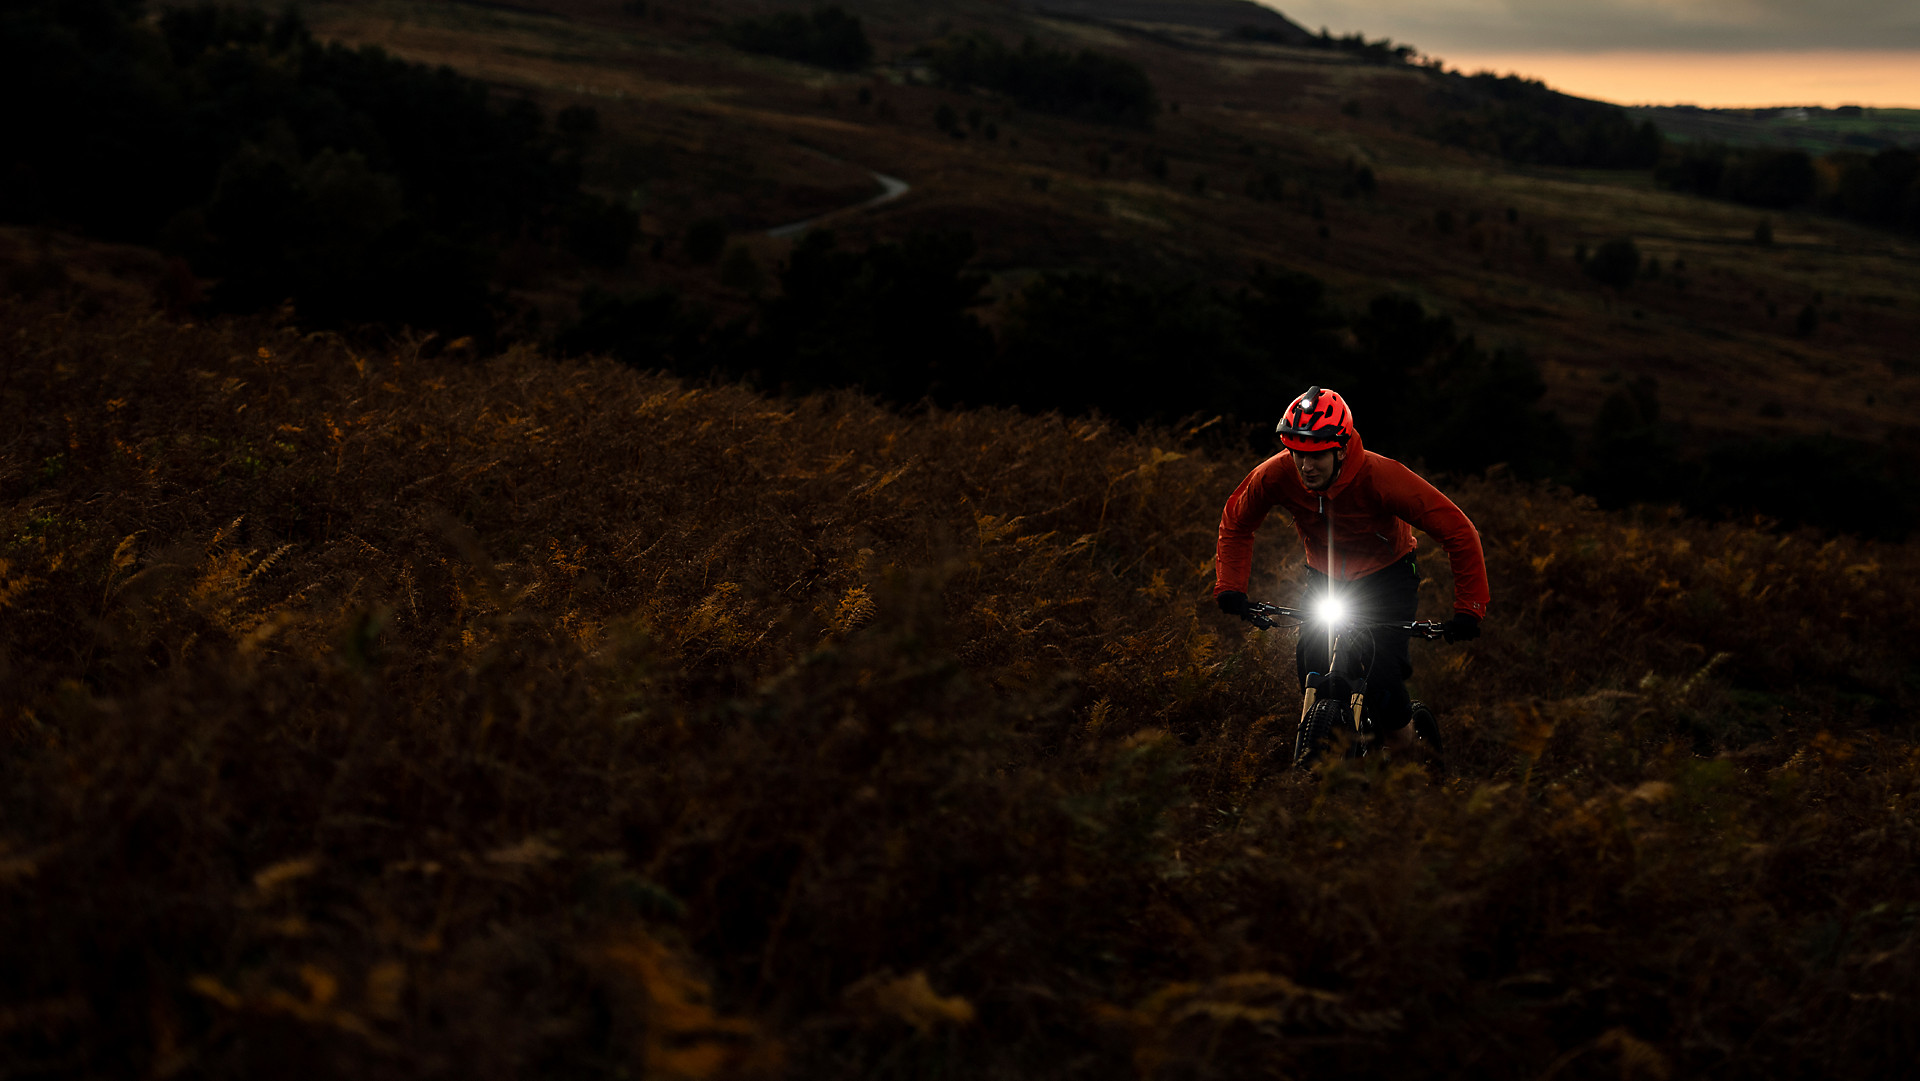 man cycling with front bike light